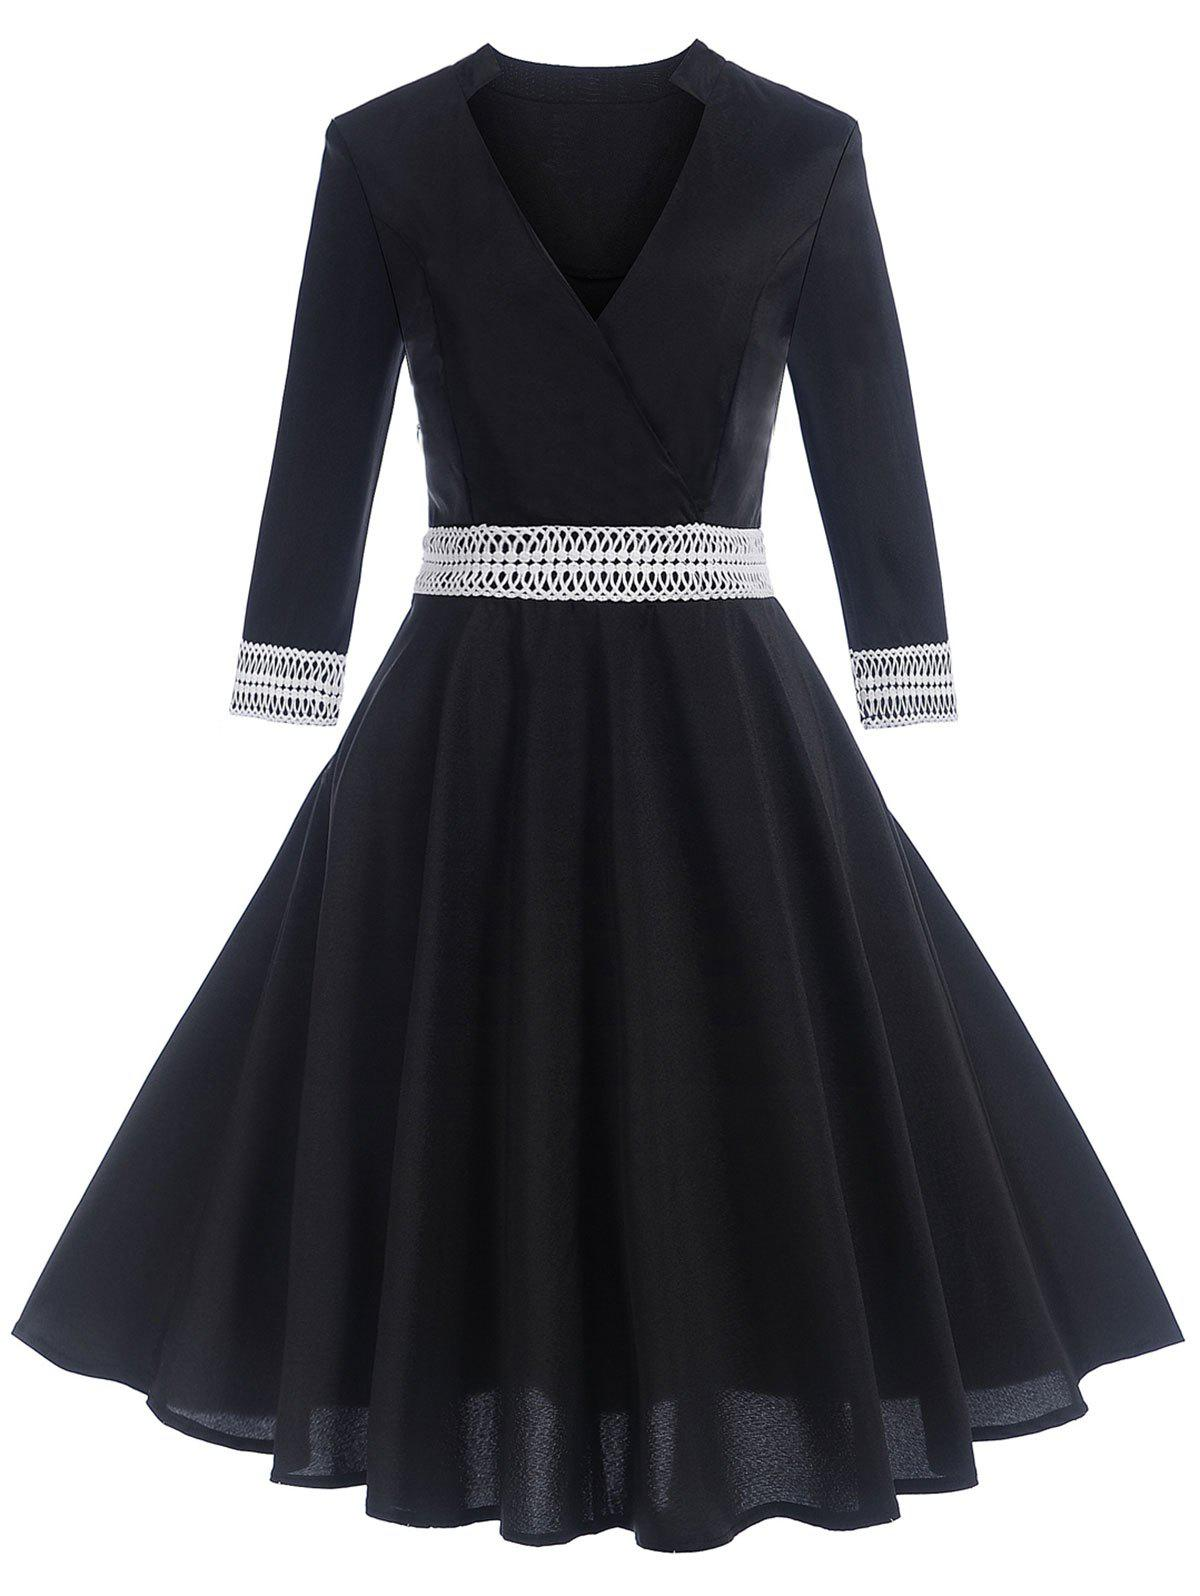 Unique Vintage Contrast Trim Pin Up Dress